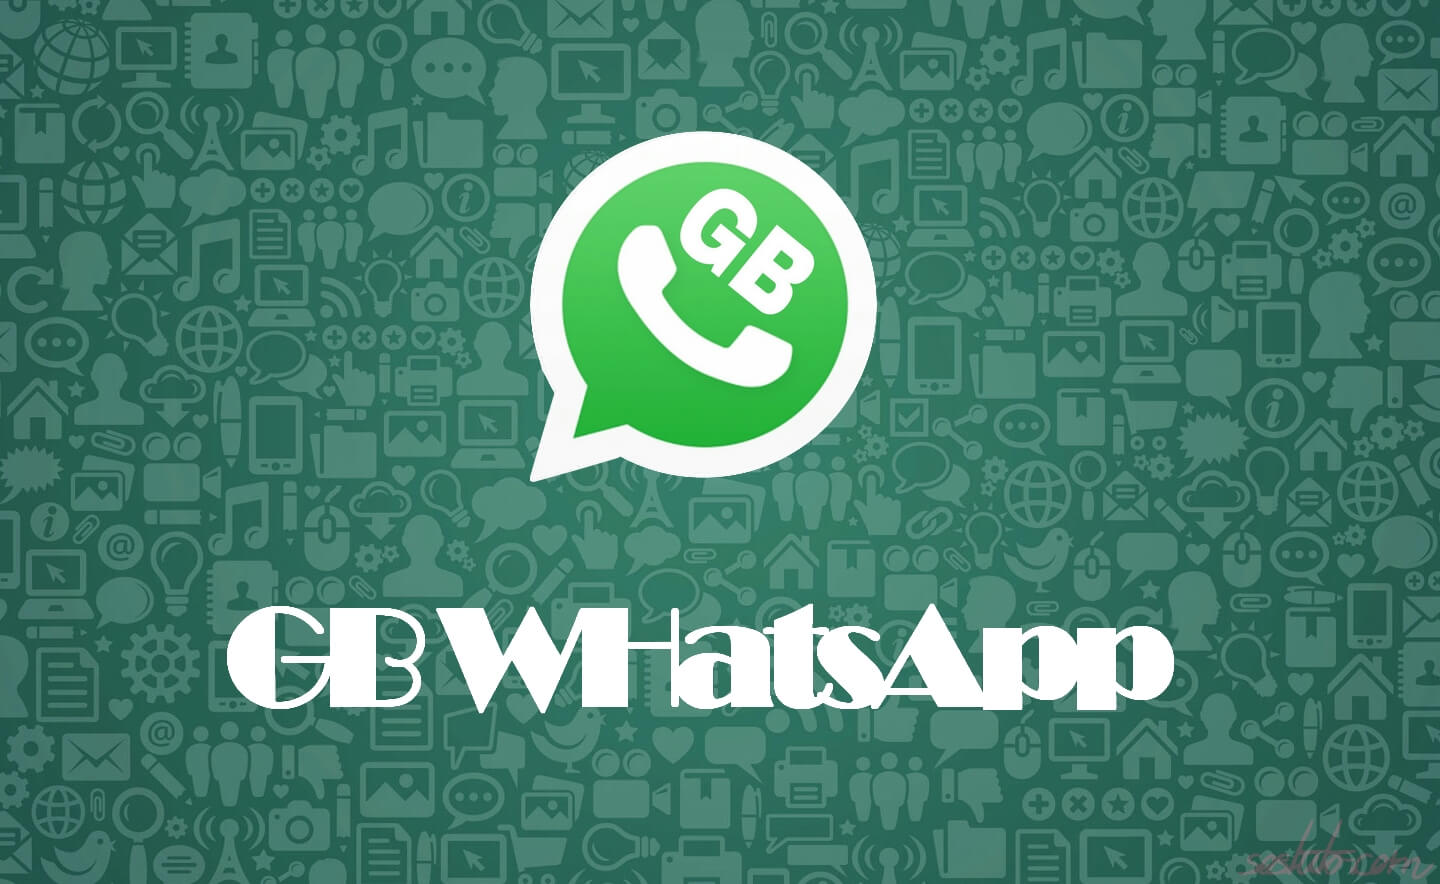 GBWhatsApp Télécharger GBWhatsApp 6.65 et WhatsApp plus 6.65 pour Android